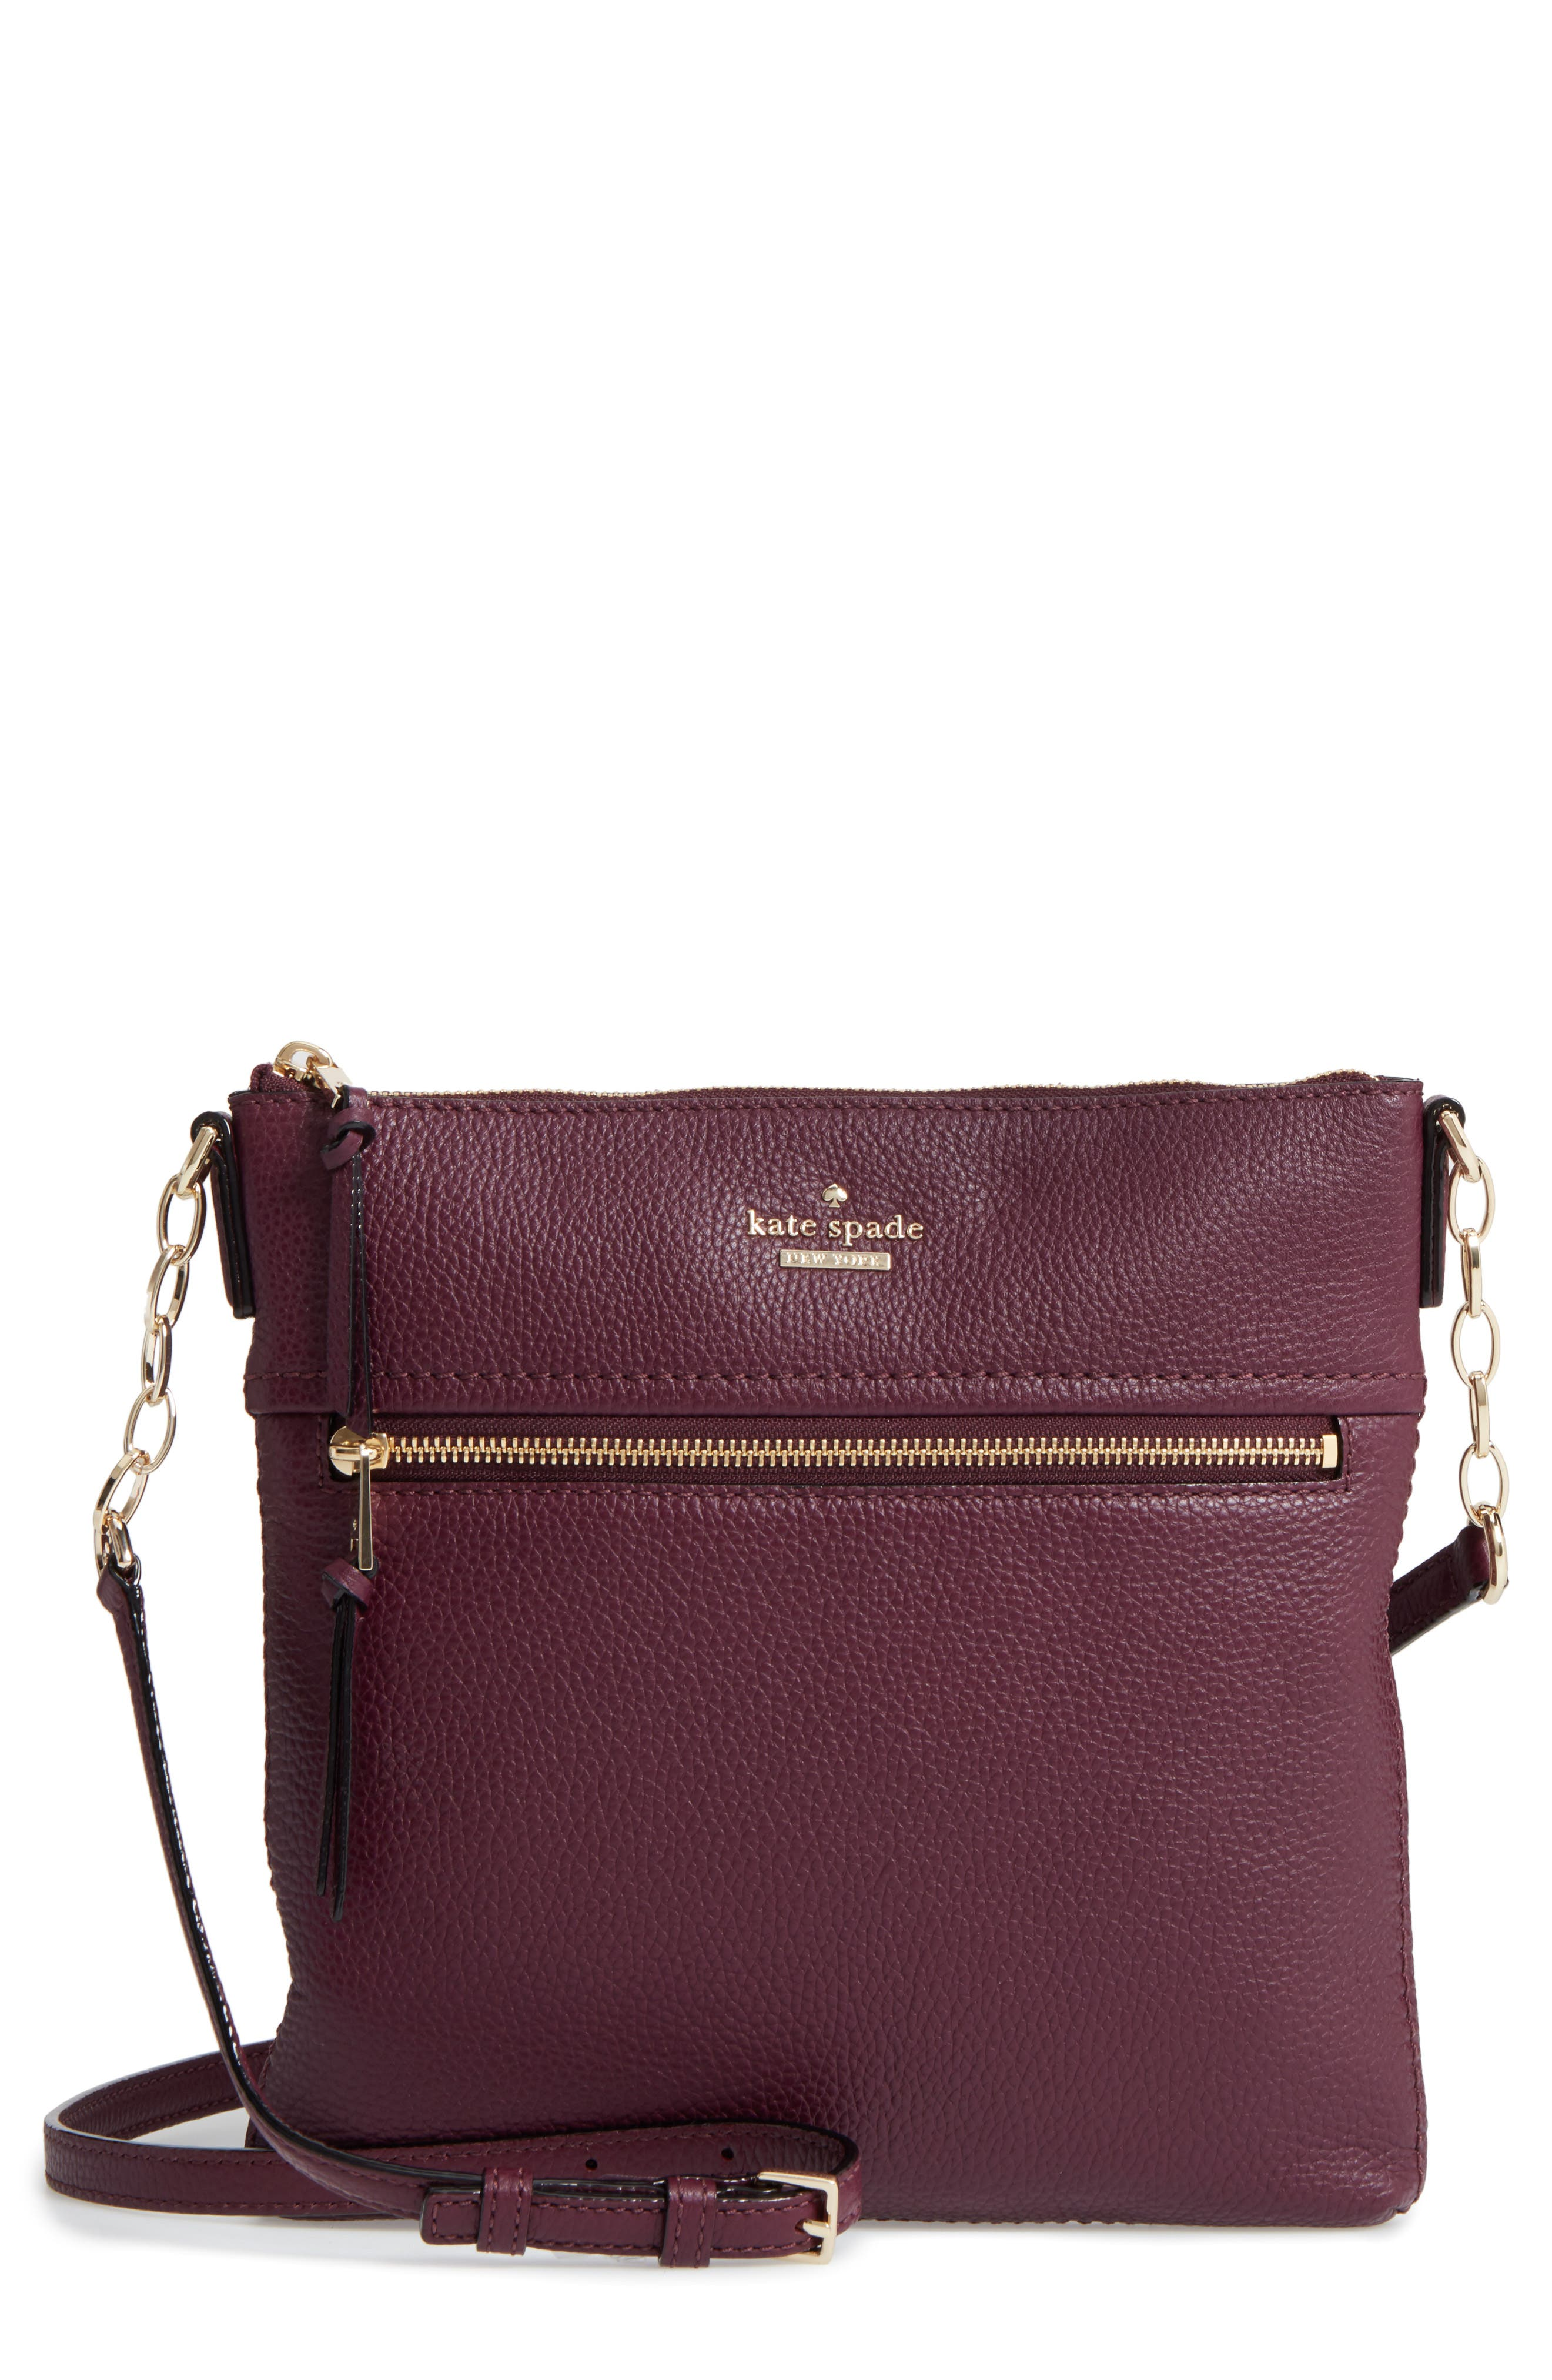 kate spade new york jackson street - melisse crossbody bag